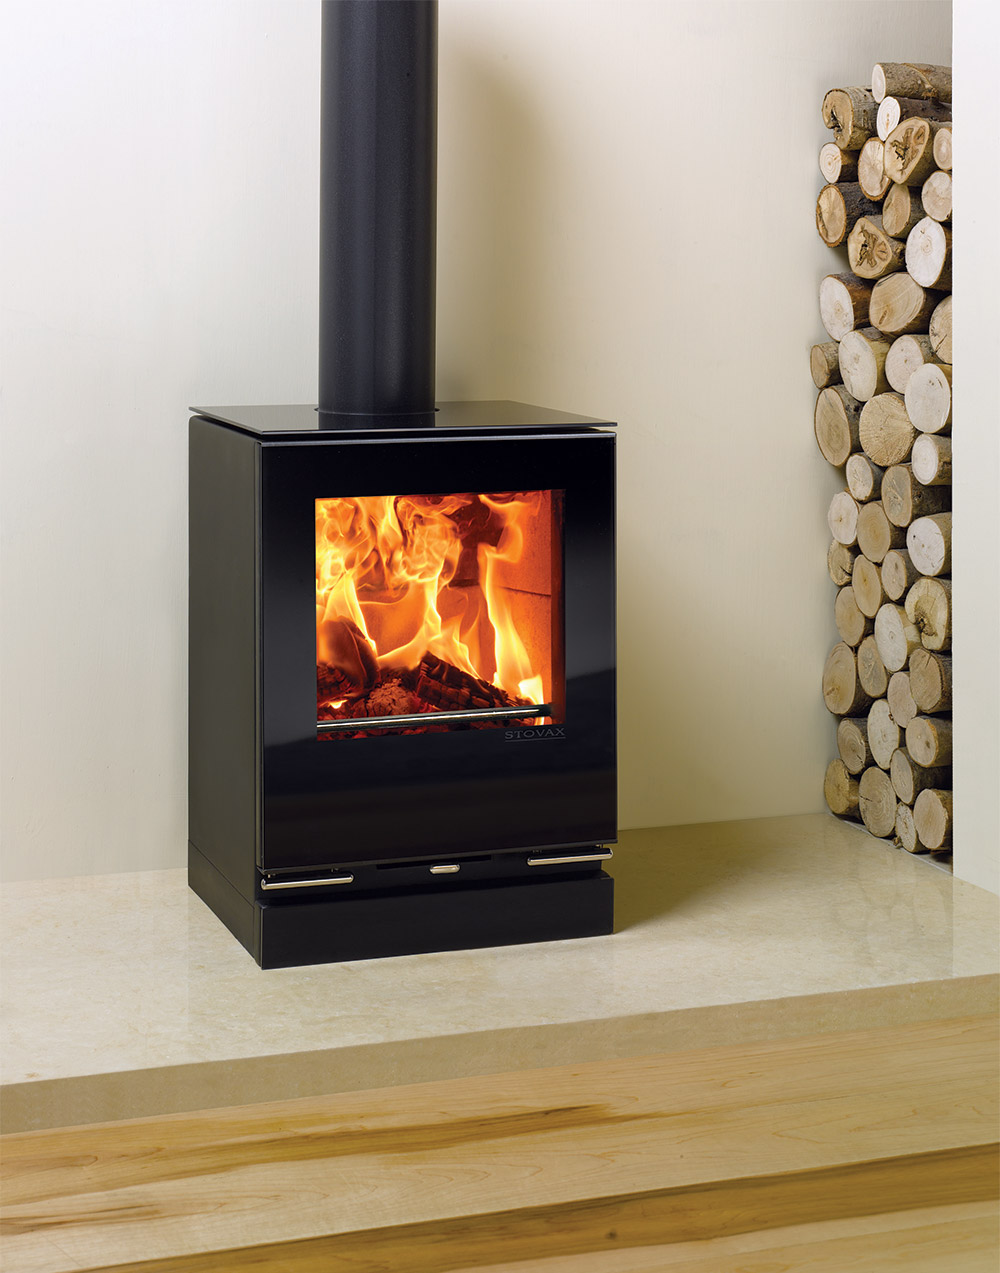 Stovax Riva Vision Small Freestanding Stoves Stovax Gazco Stoves Wood Burning Multi Fuel